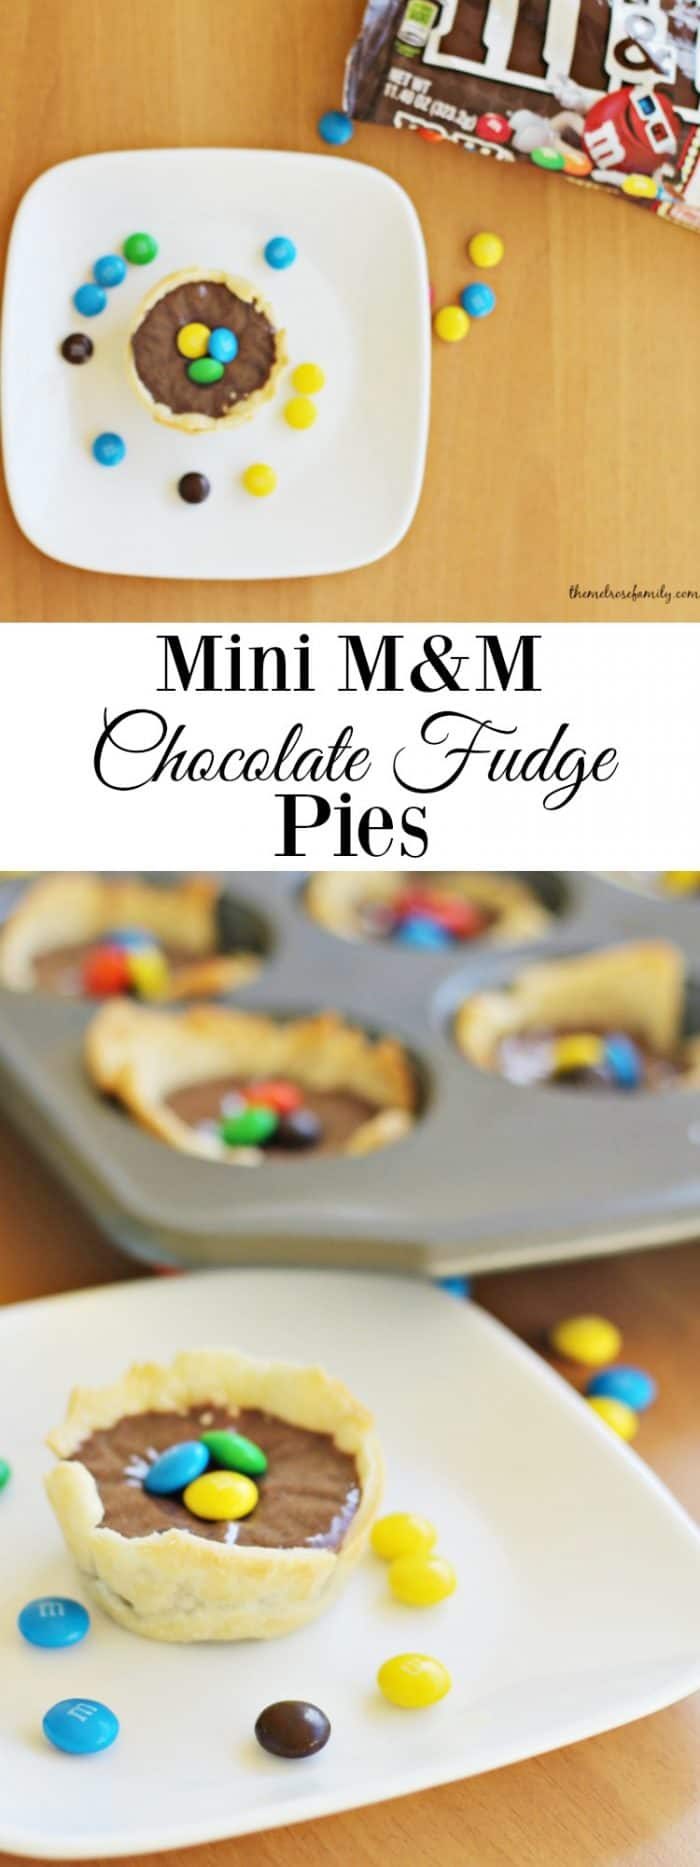 Need a fun yet delicious dessert idea? These Mini M&M Chocolate Fudge Pies are super easy and oh so good!